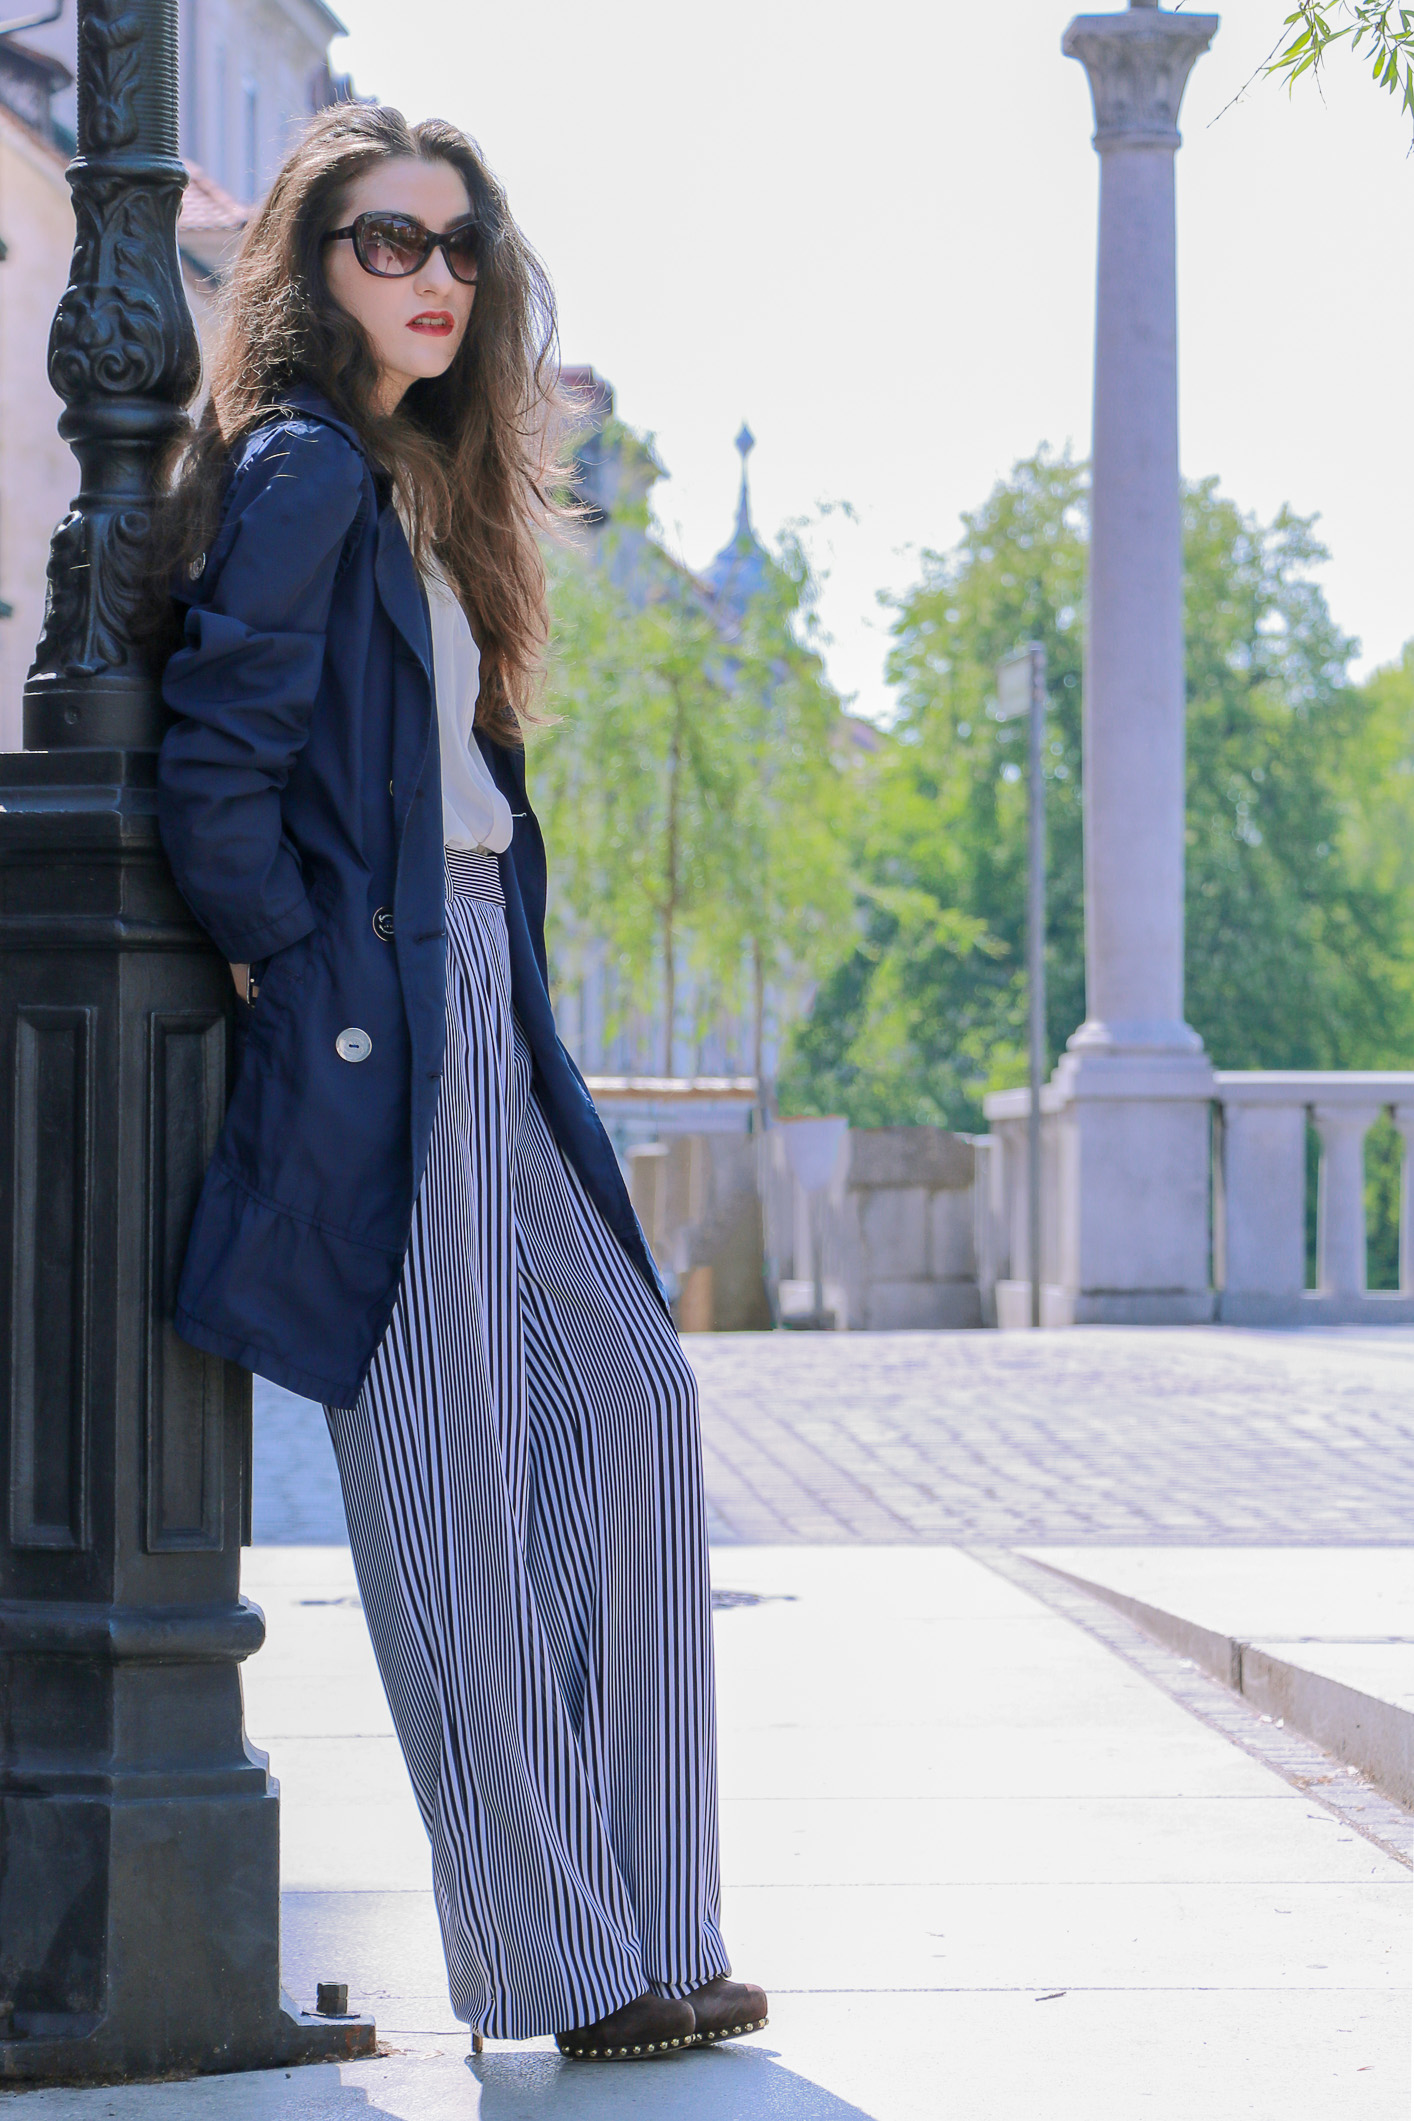 Fashion blogger Veronika Lipar of Brunette From Wall Street sharing how to style wide-leg striped pants for a chic look this spring